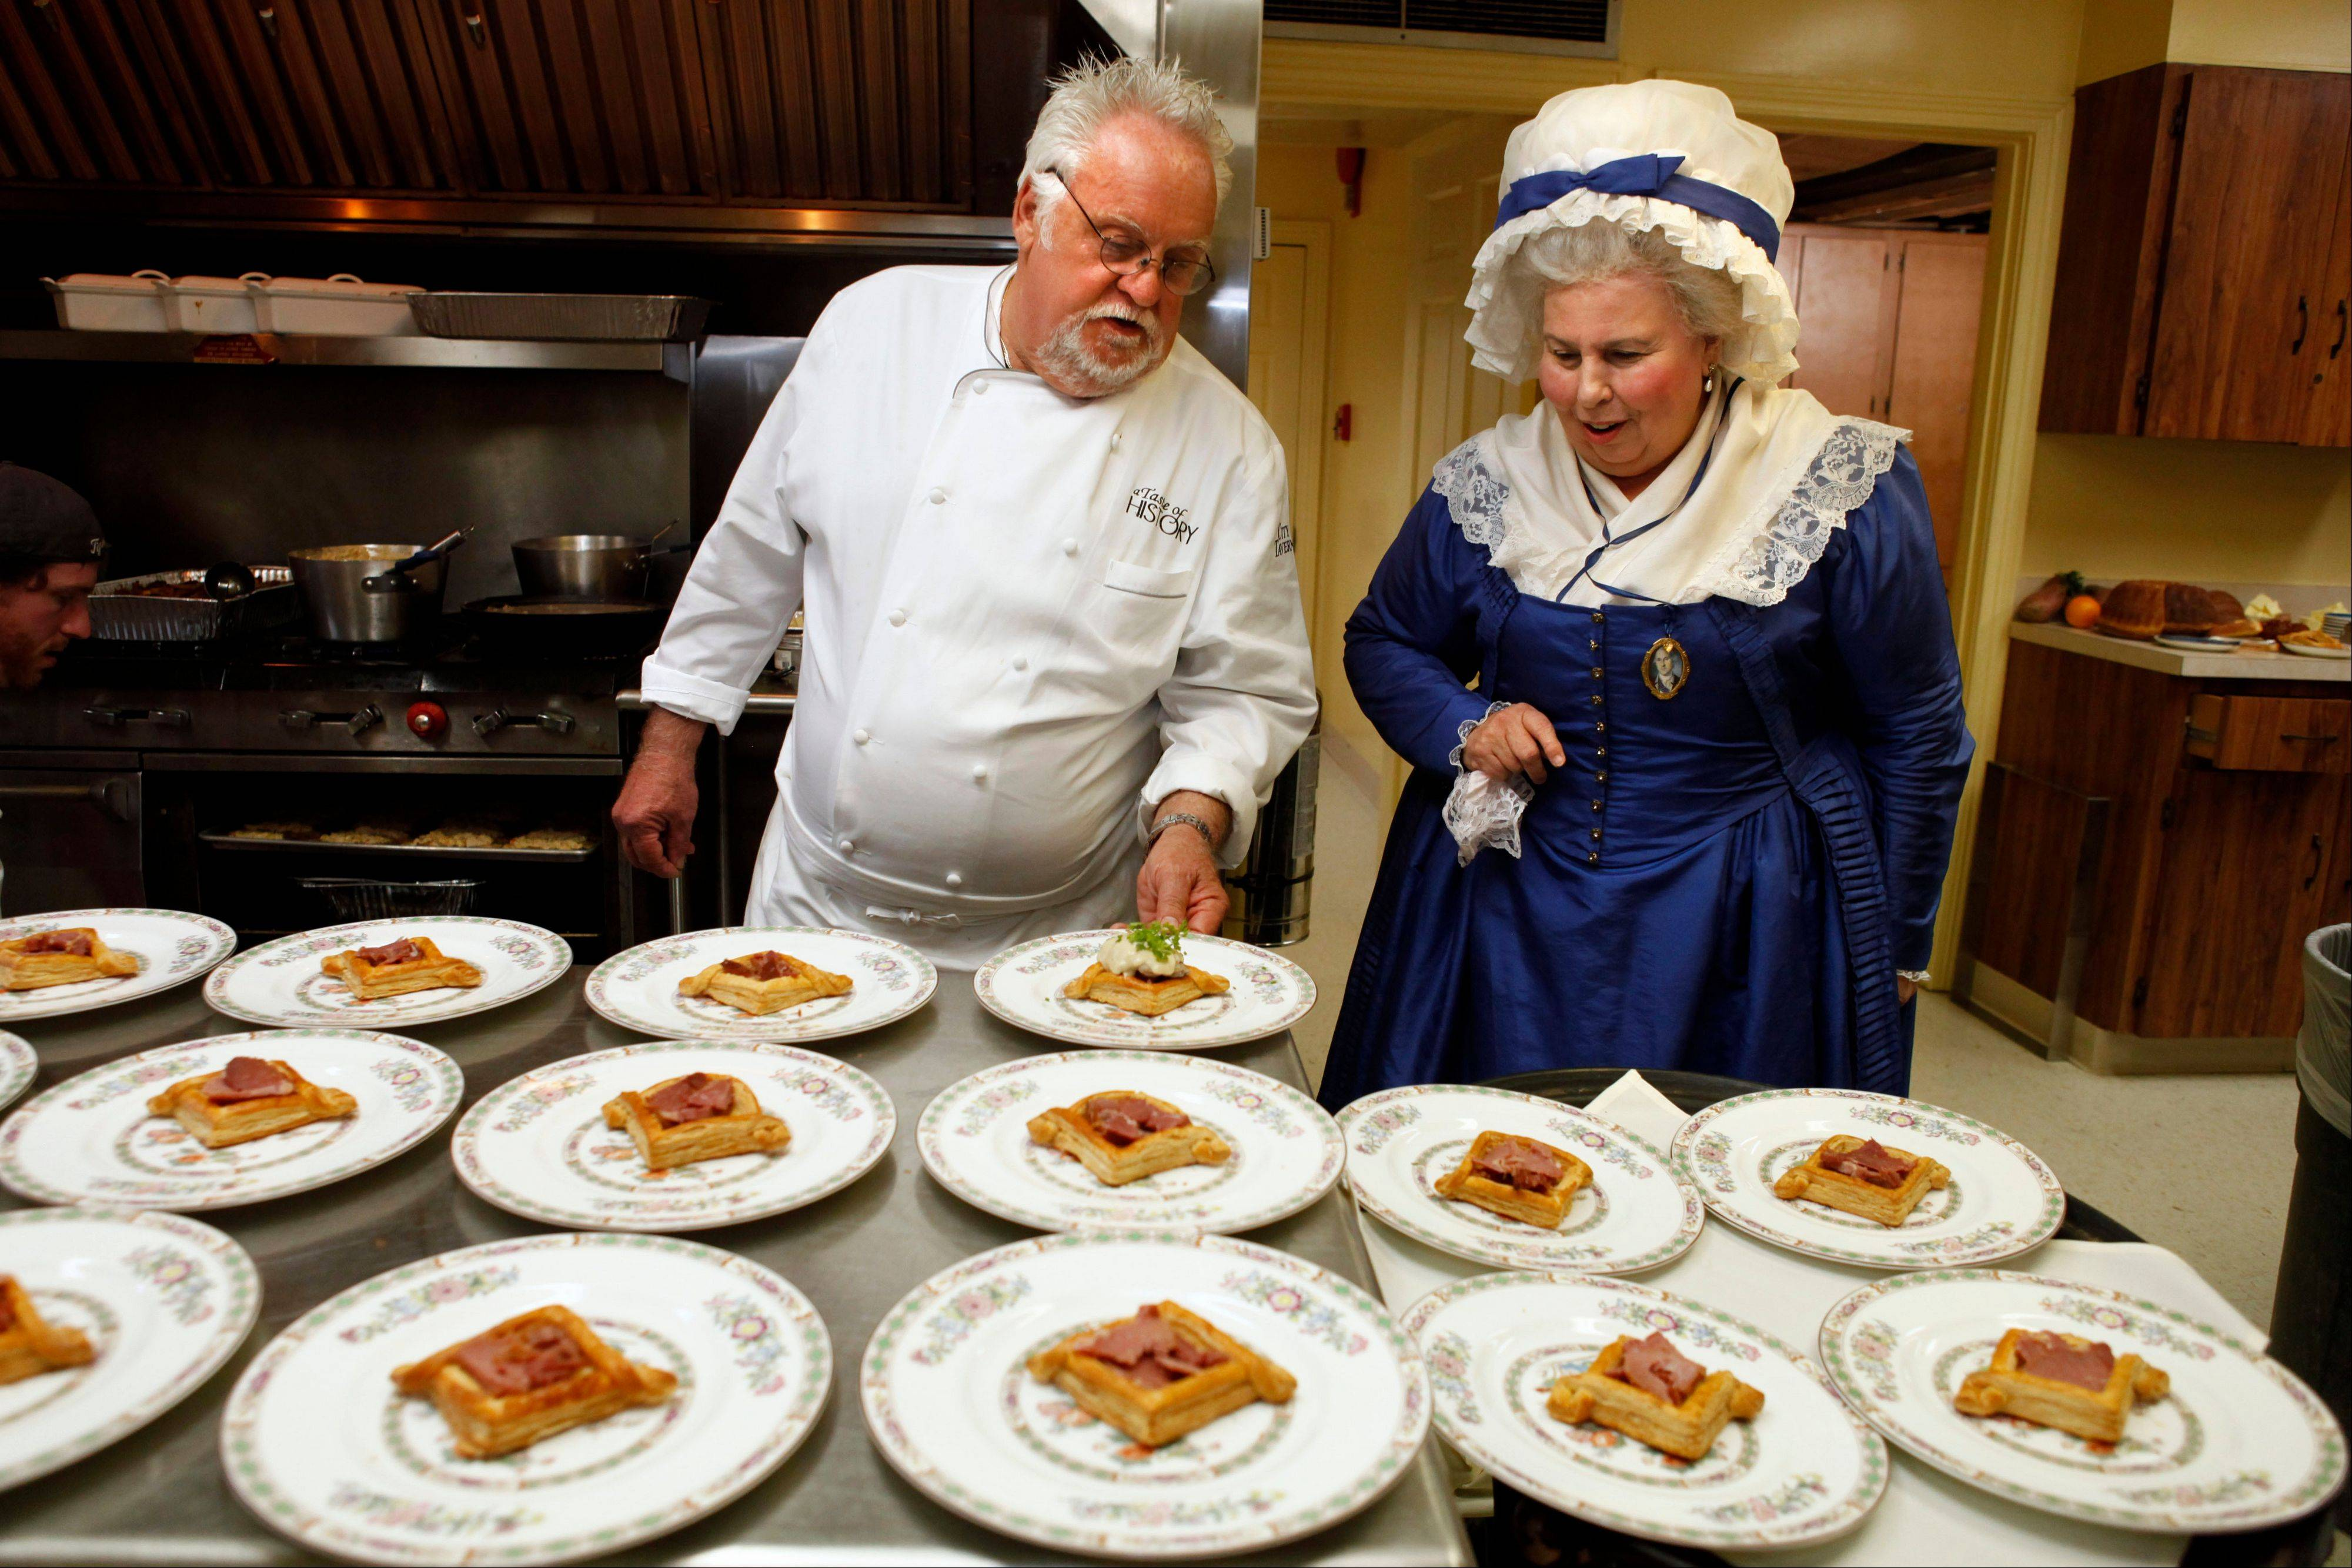 Chef Walter Staib, left, will appear at the Woodstock Opera House on Thursday, March 20.